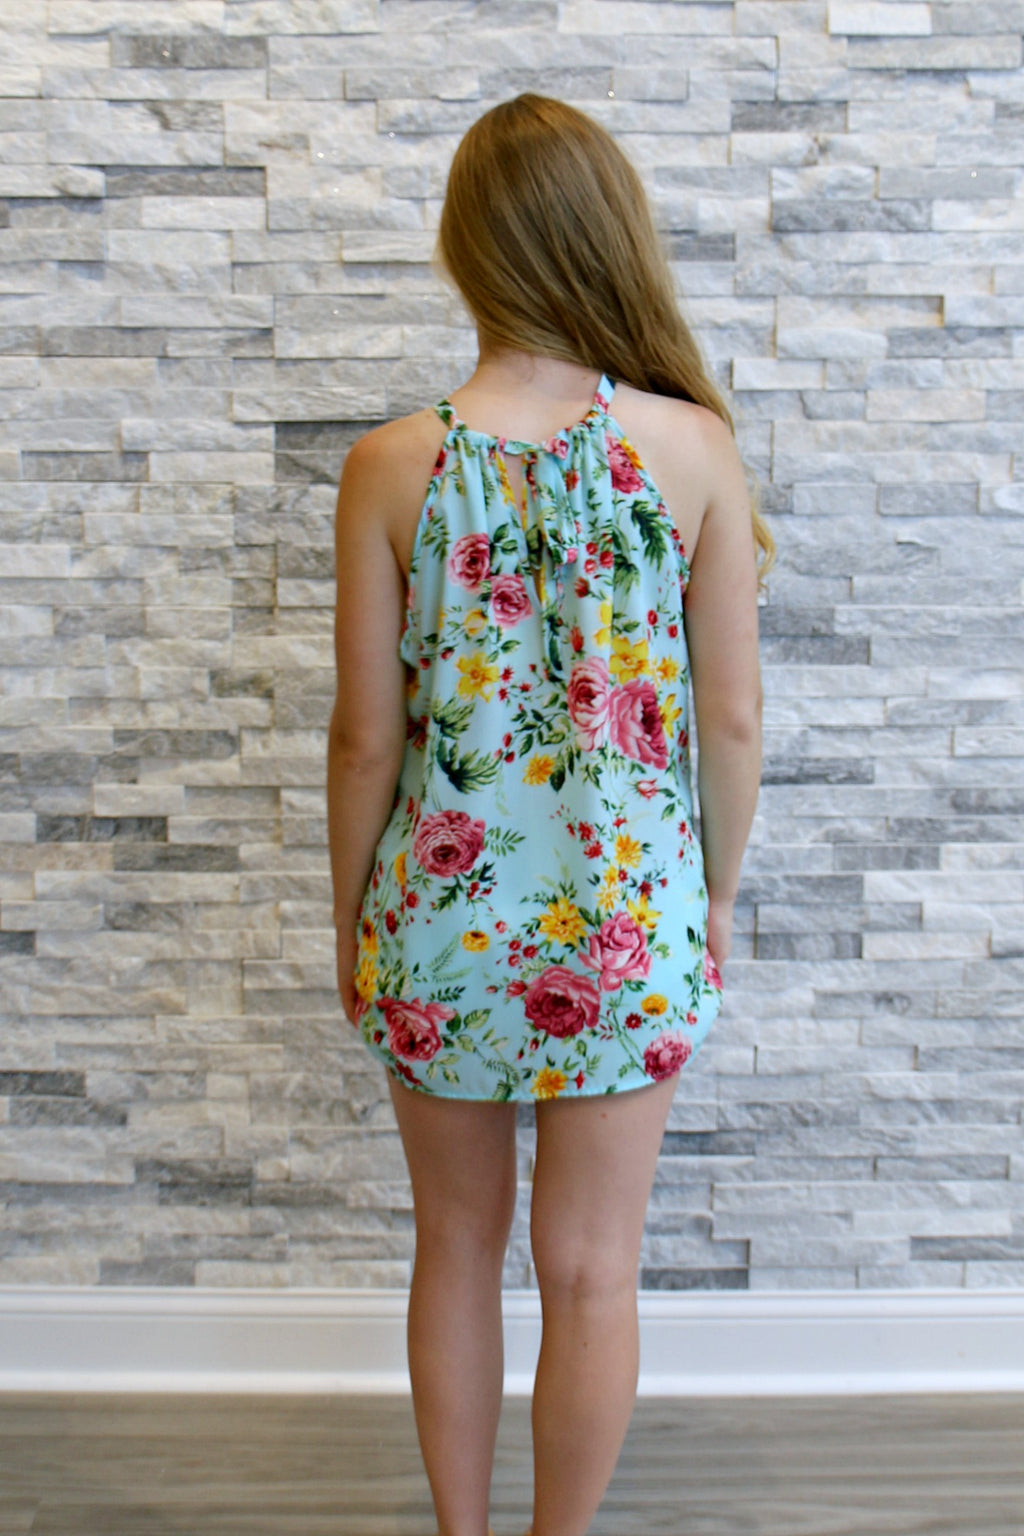 One Floral At A Time - Yellow Kiss Boutique